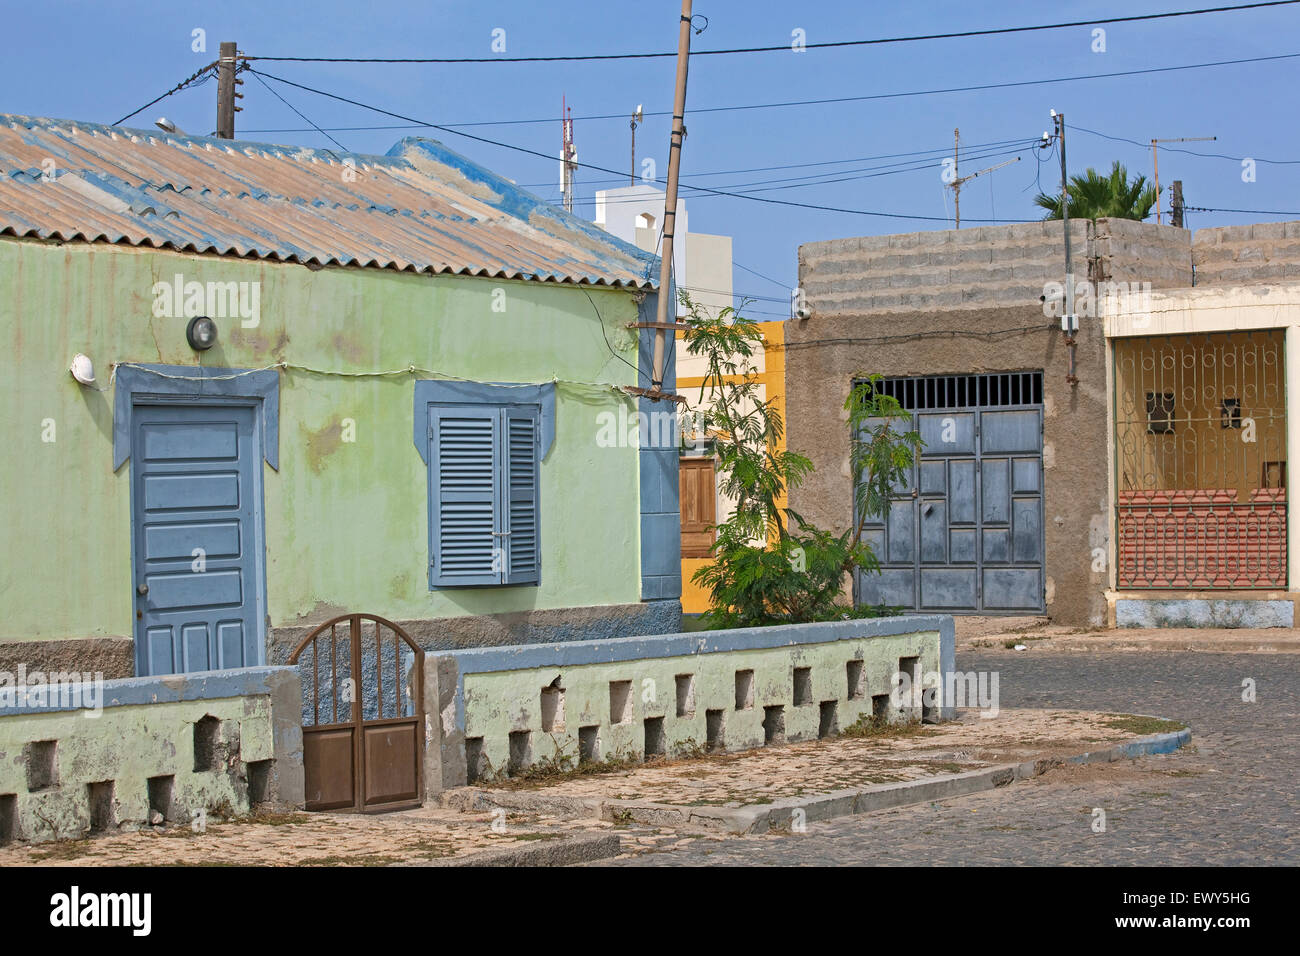 Colourful Portuguese colonial house in old part of the fishing village Palmeira on the island of Sal, Cape Verde - Stock Image